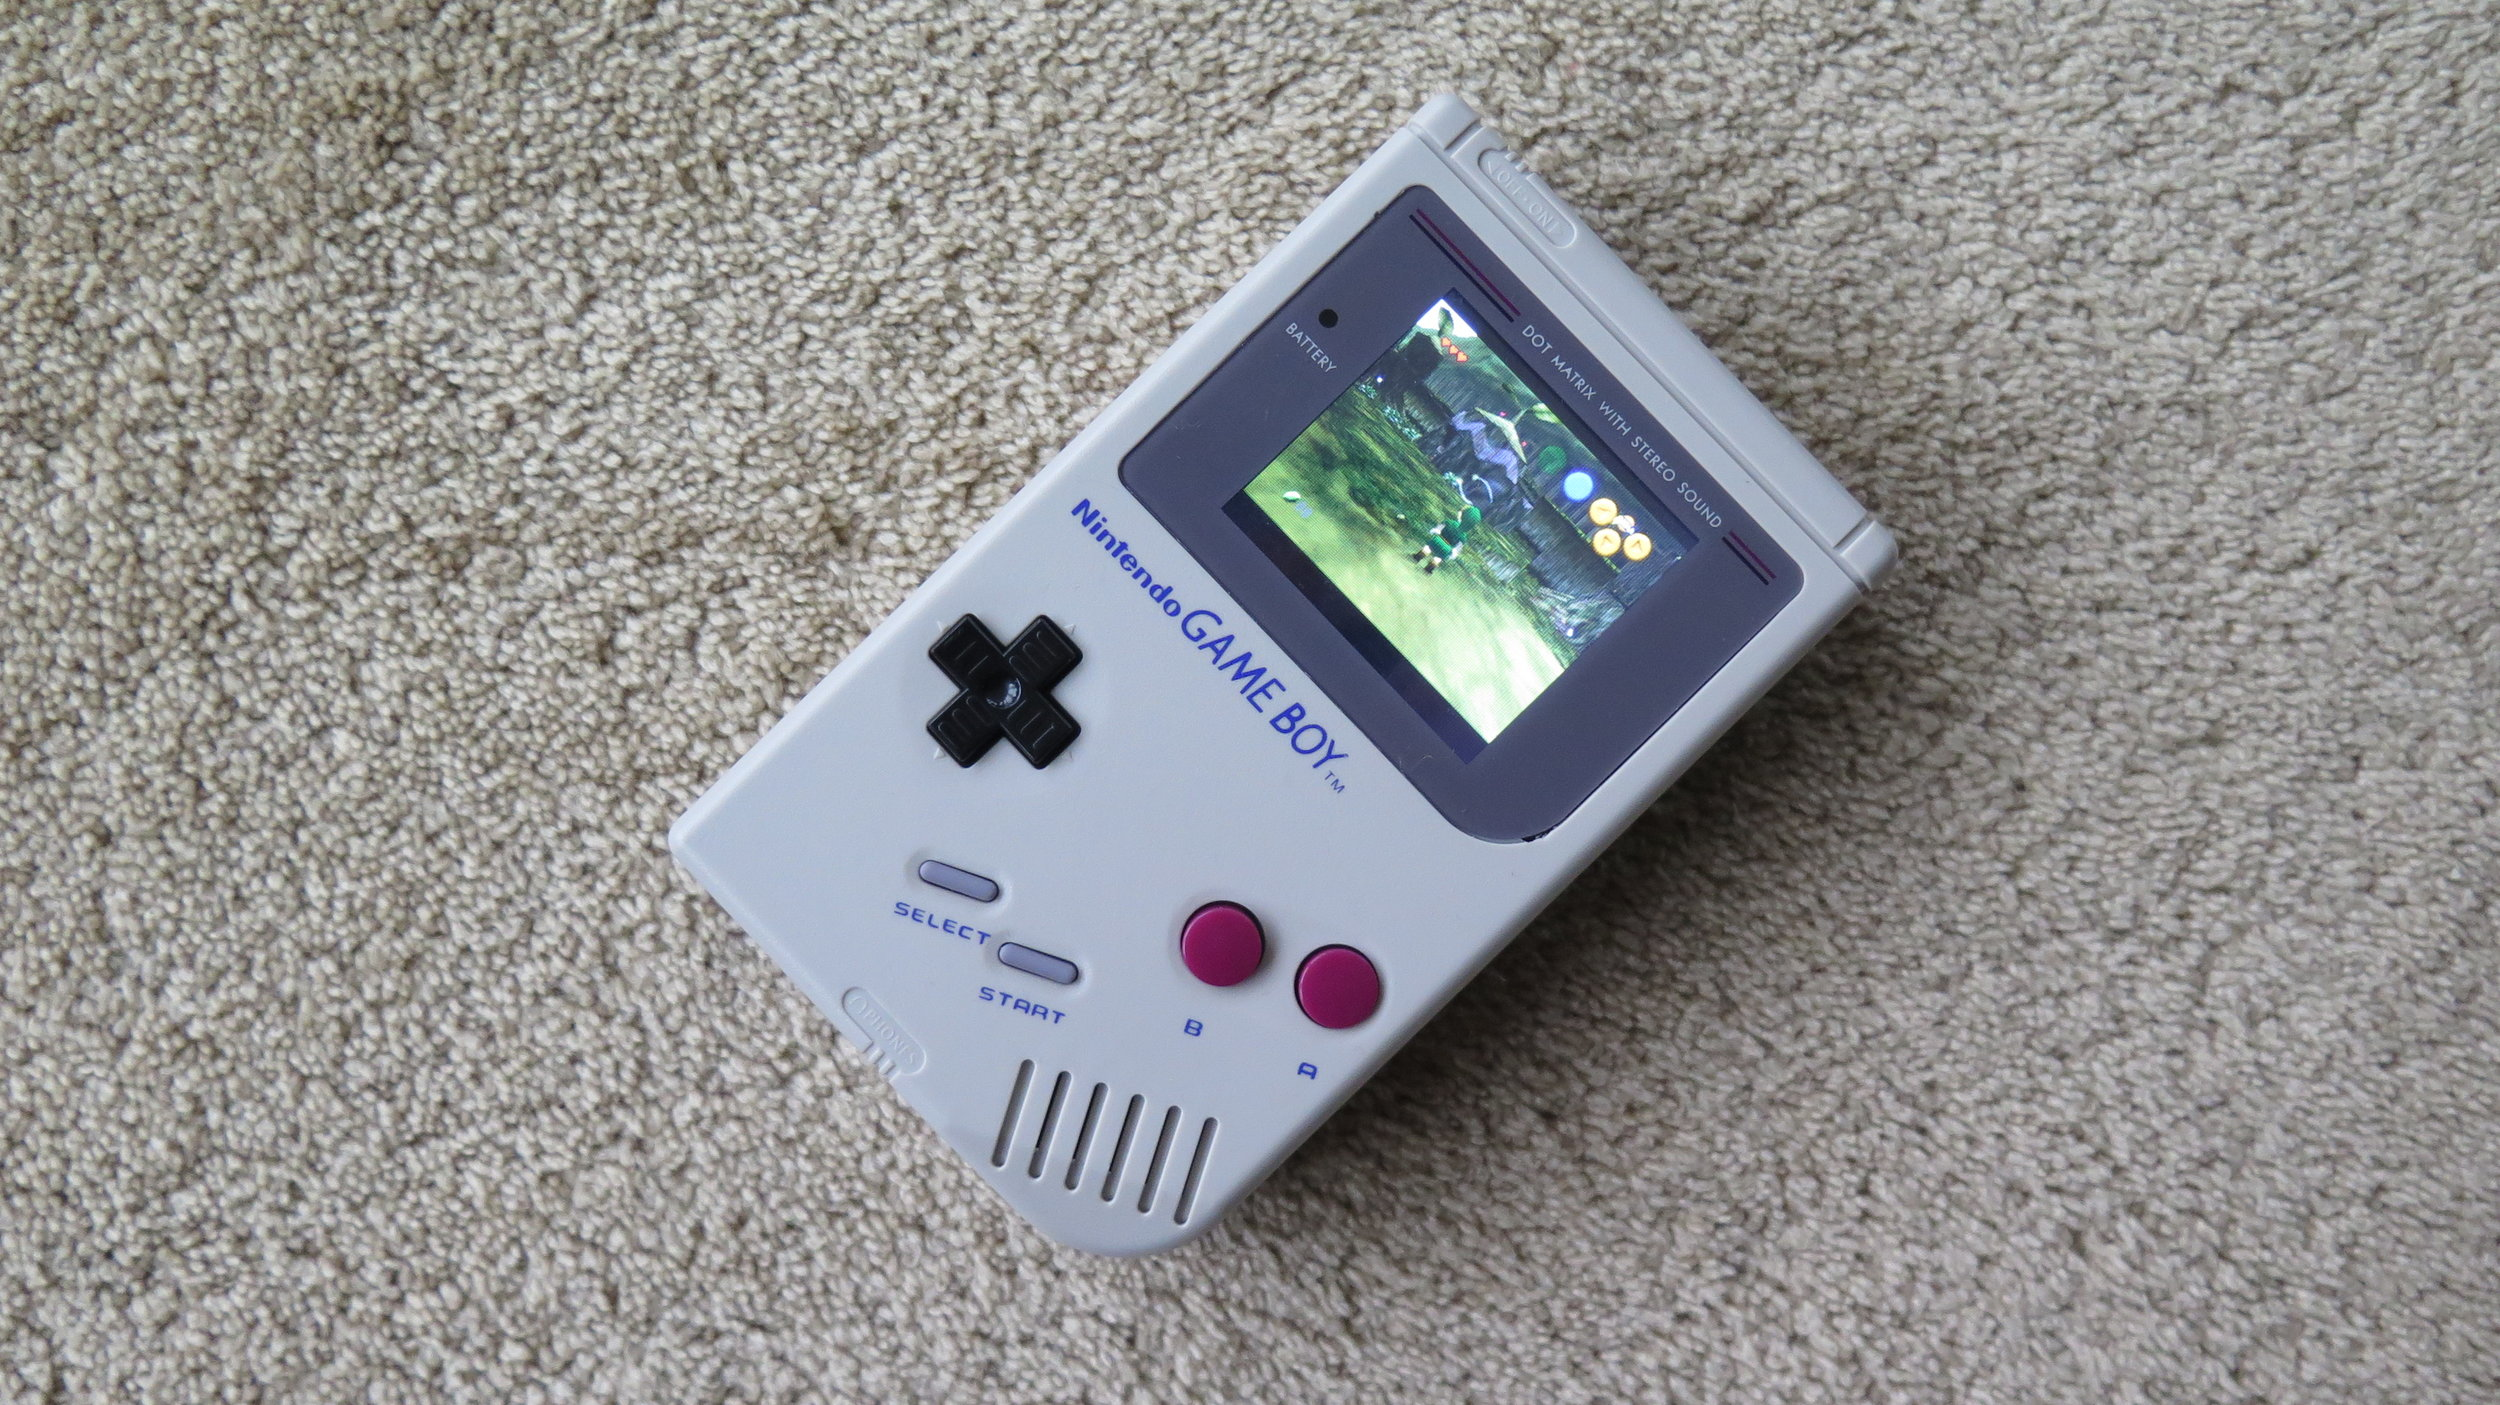 Gameboy running Zelda - Ocarina of Time N64